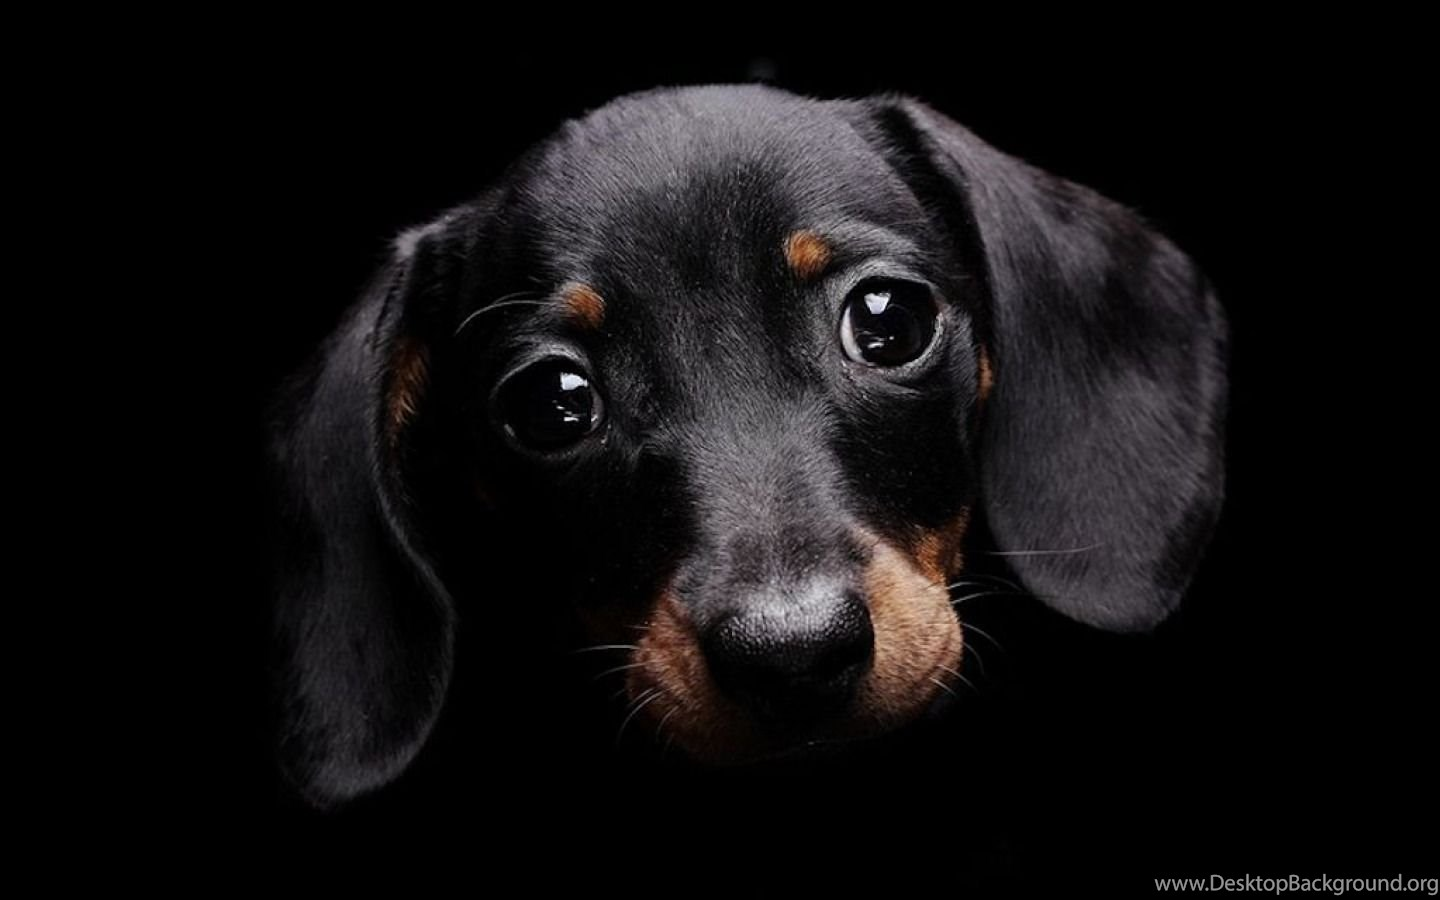 Cute Dog With Sad Eyes Black Backgrounds Wallpapers Dogs ...